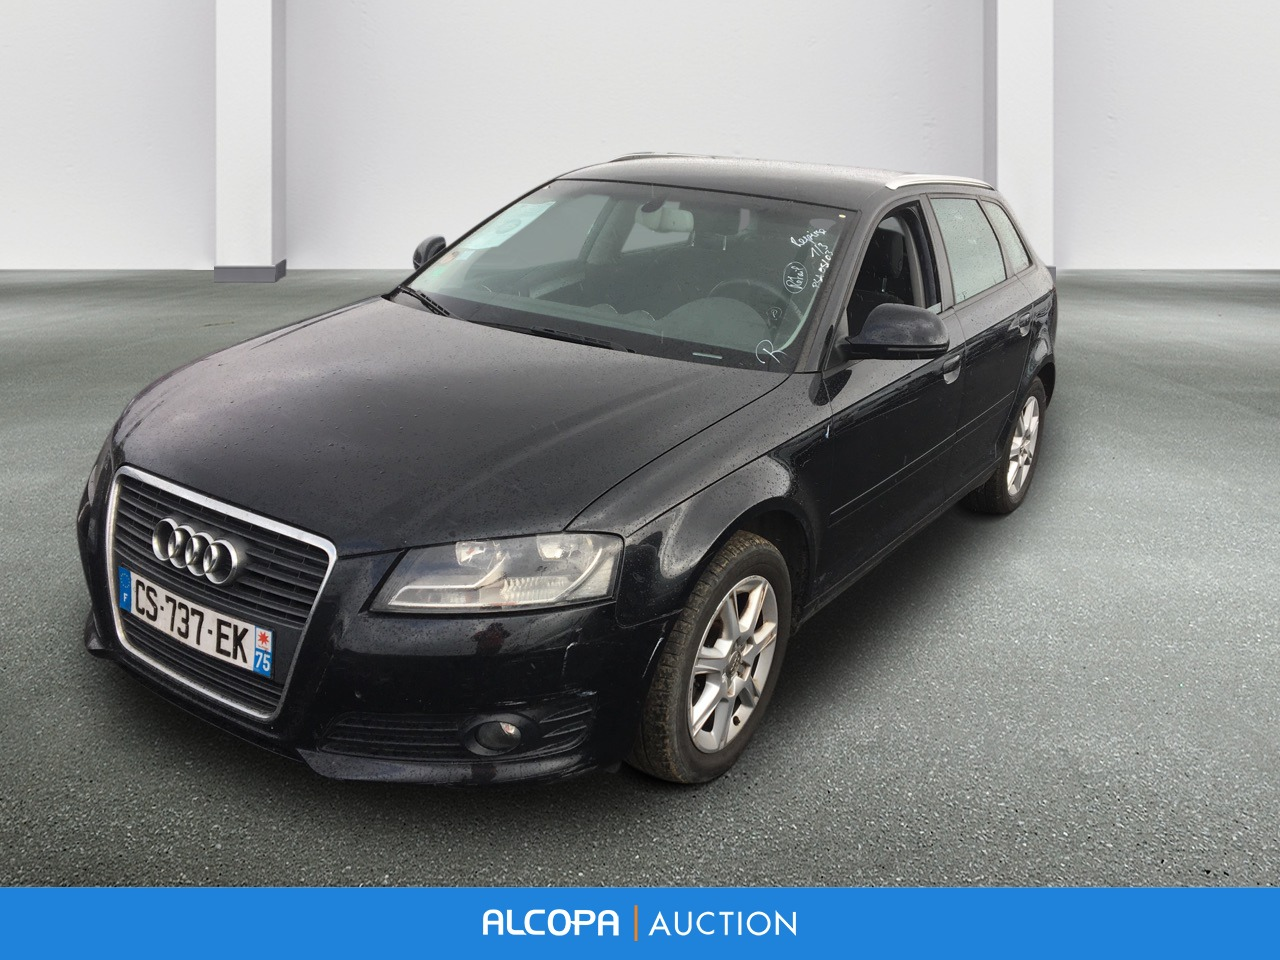 audi a3 sportback a3 sportback 1 9 tdi 105 ambiente alcopa auction. Black Bedroom Furniture Sets. Home Design Ideas